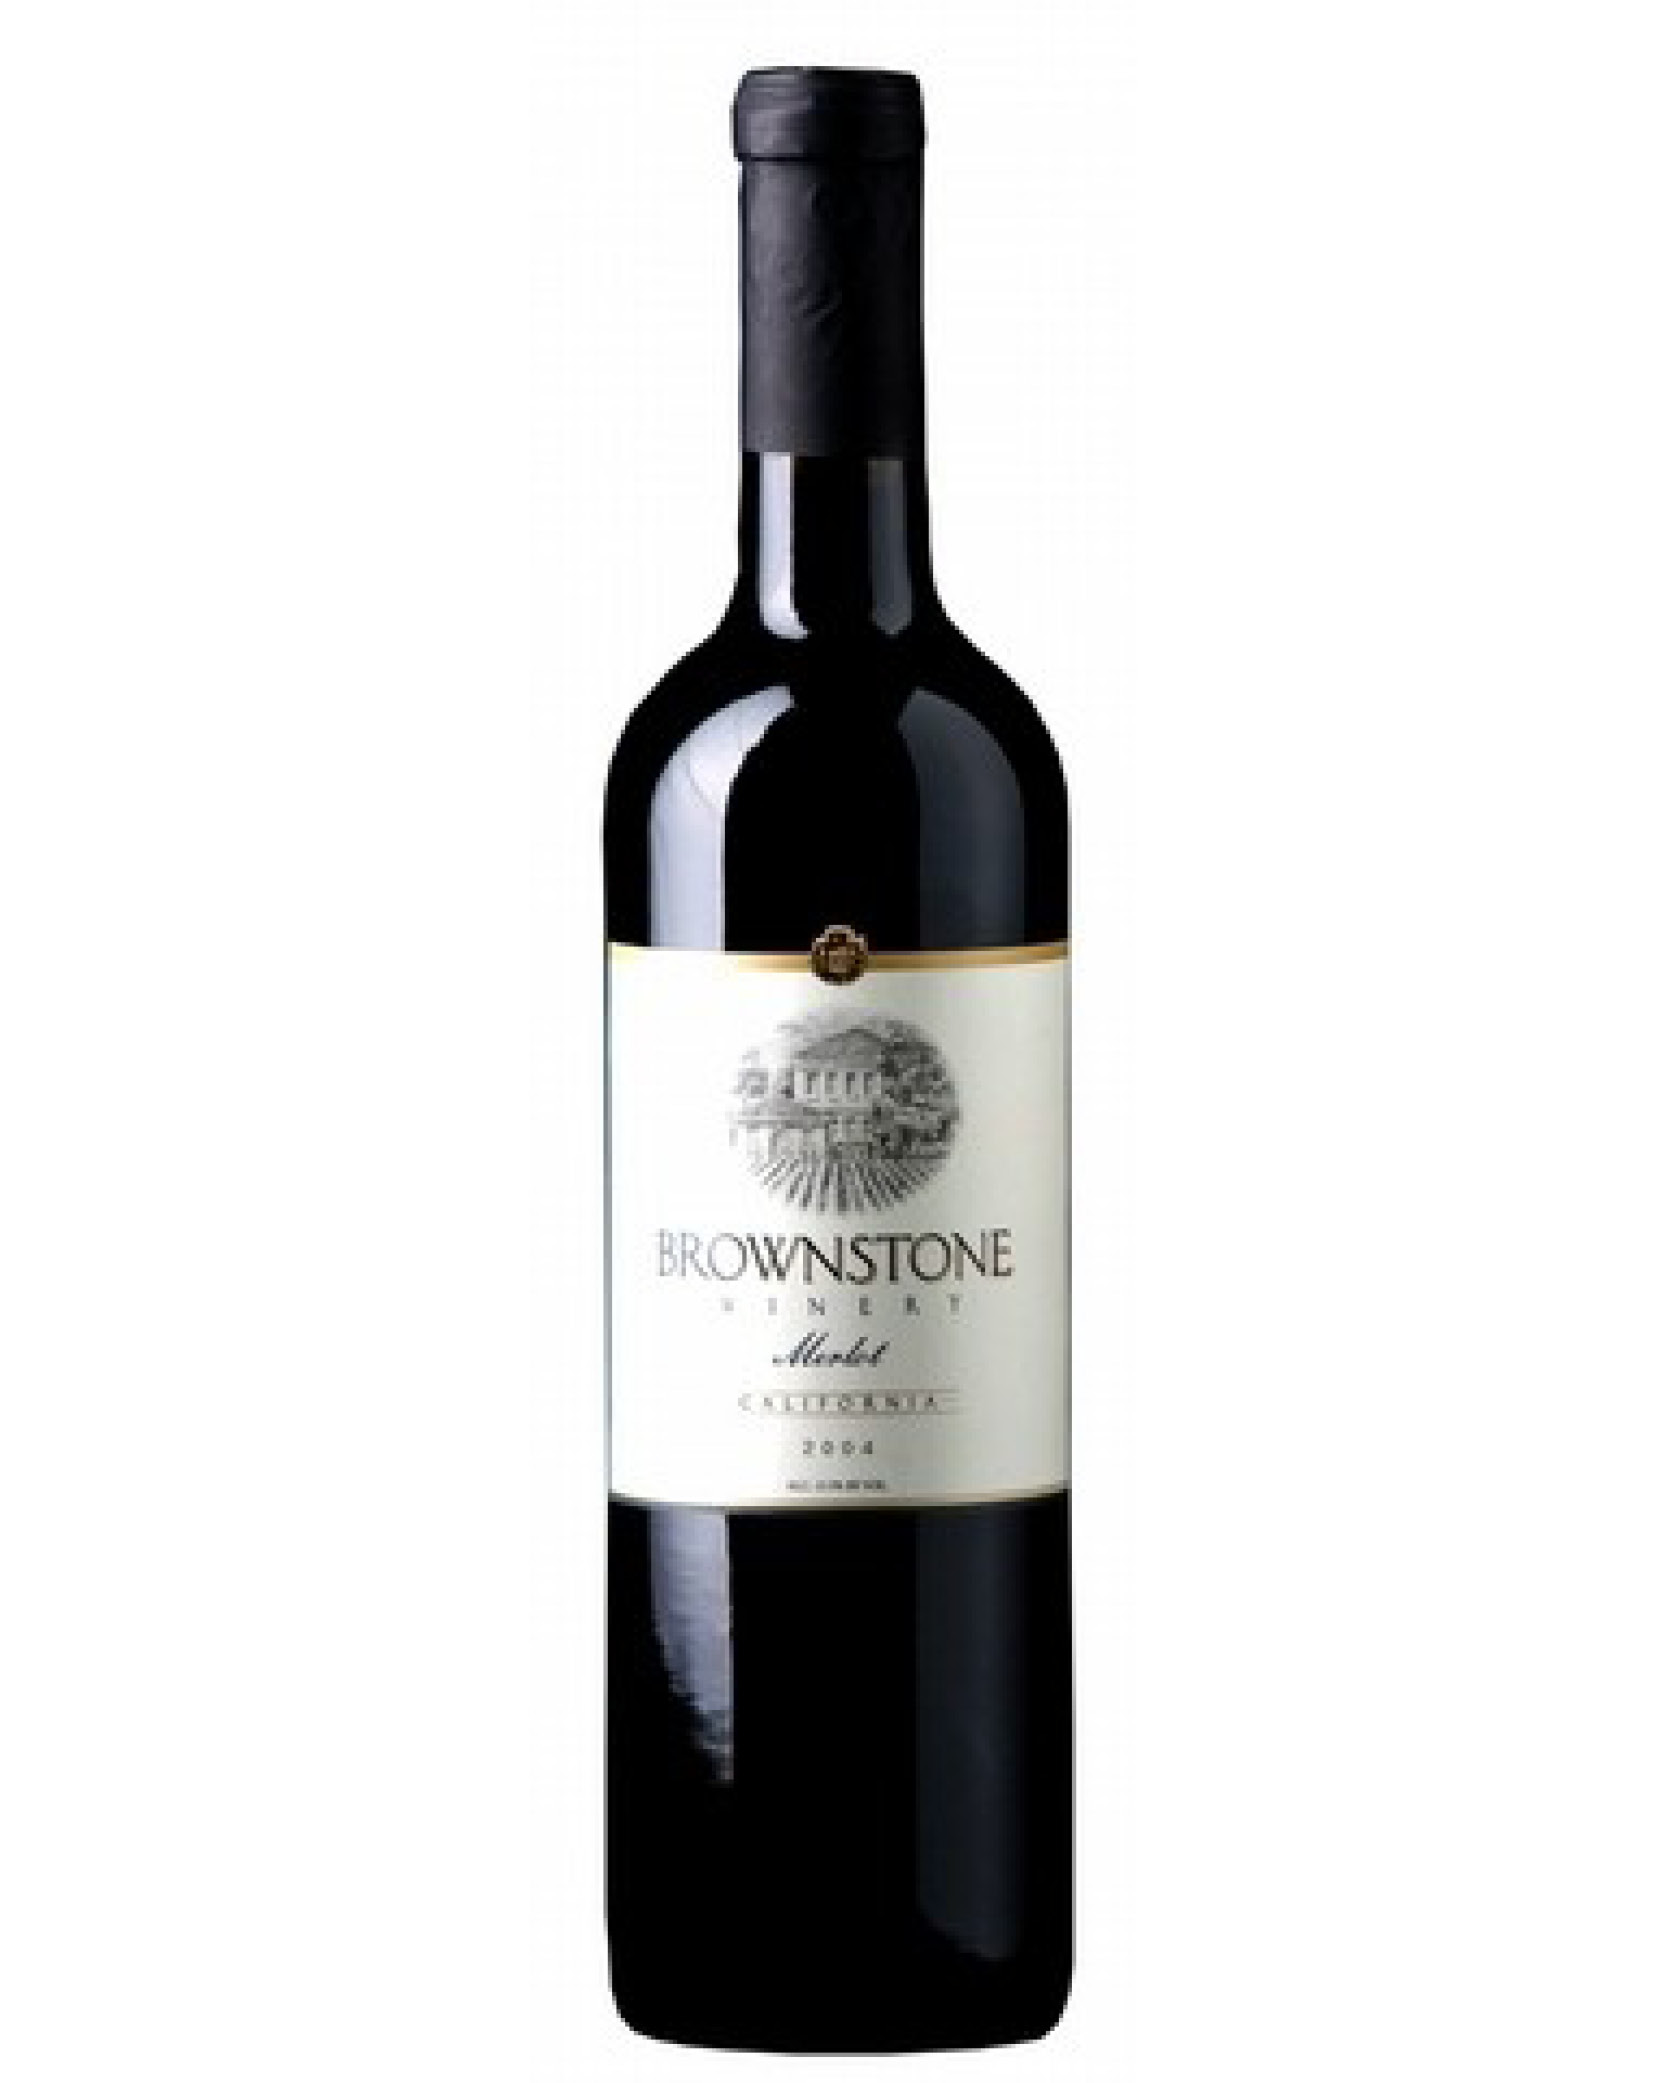 Brownstone Merlot